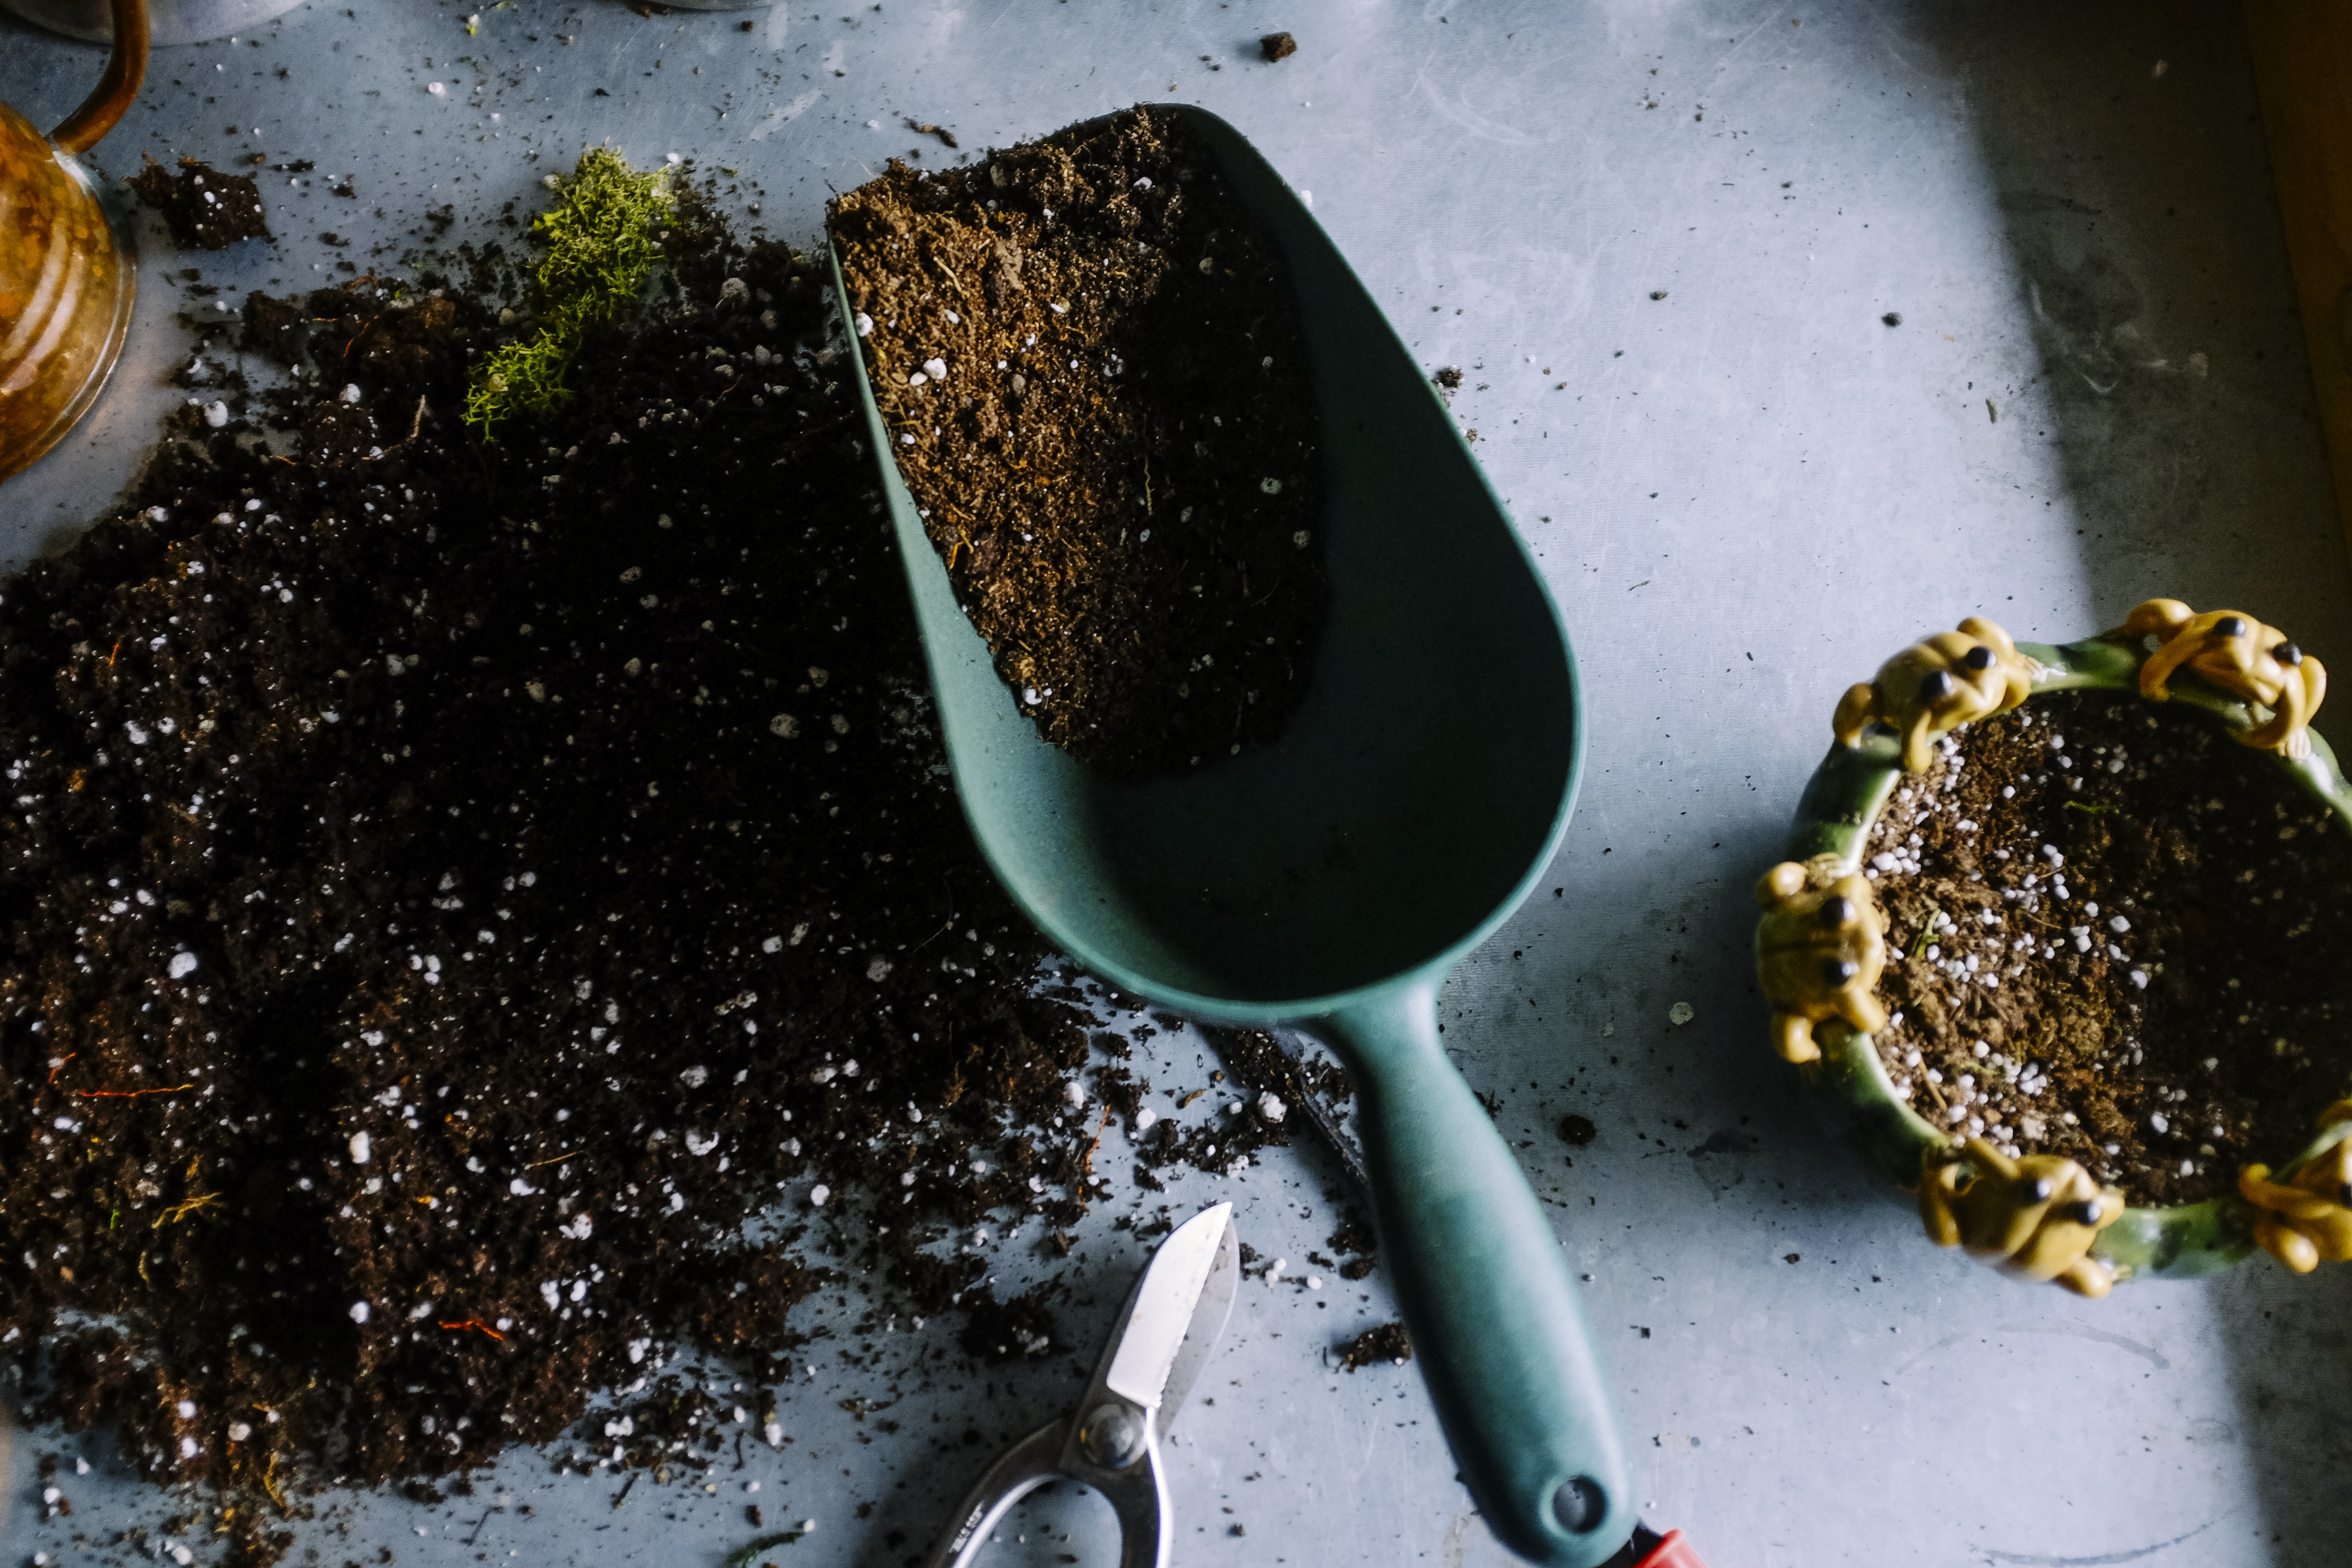 green metal garden shovel filled with brown soil